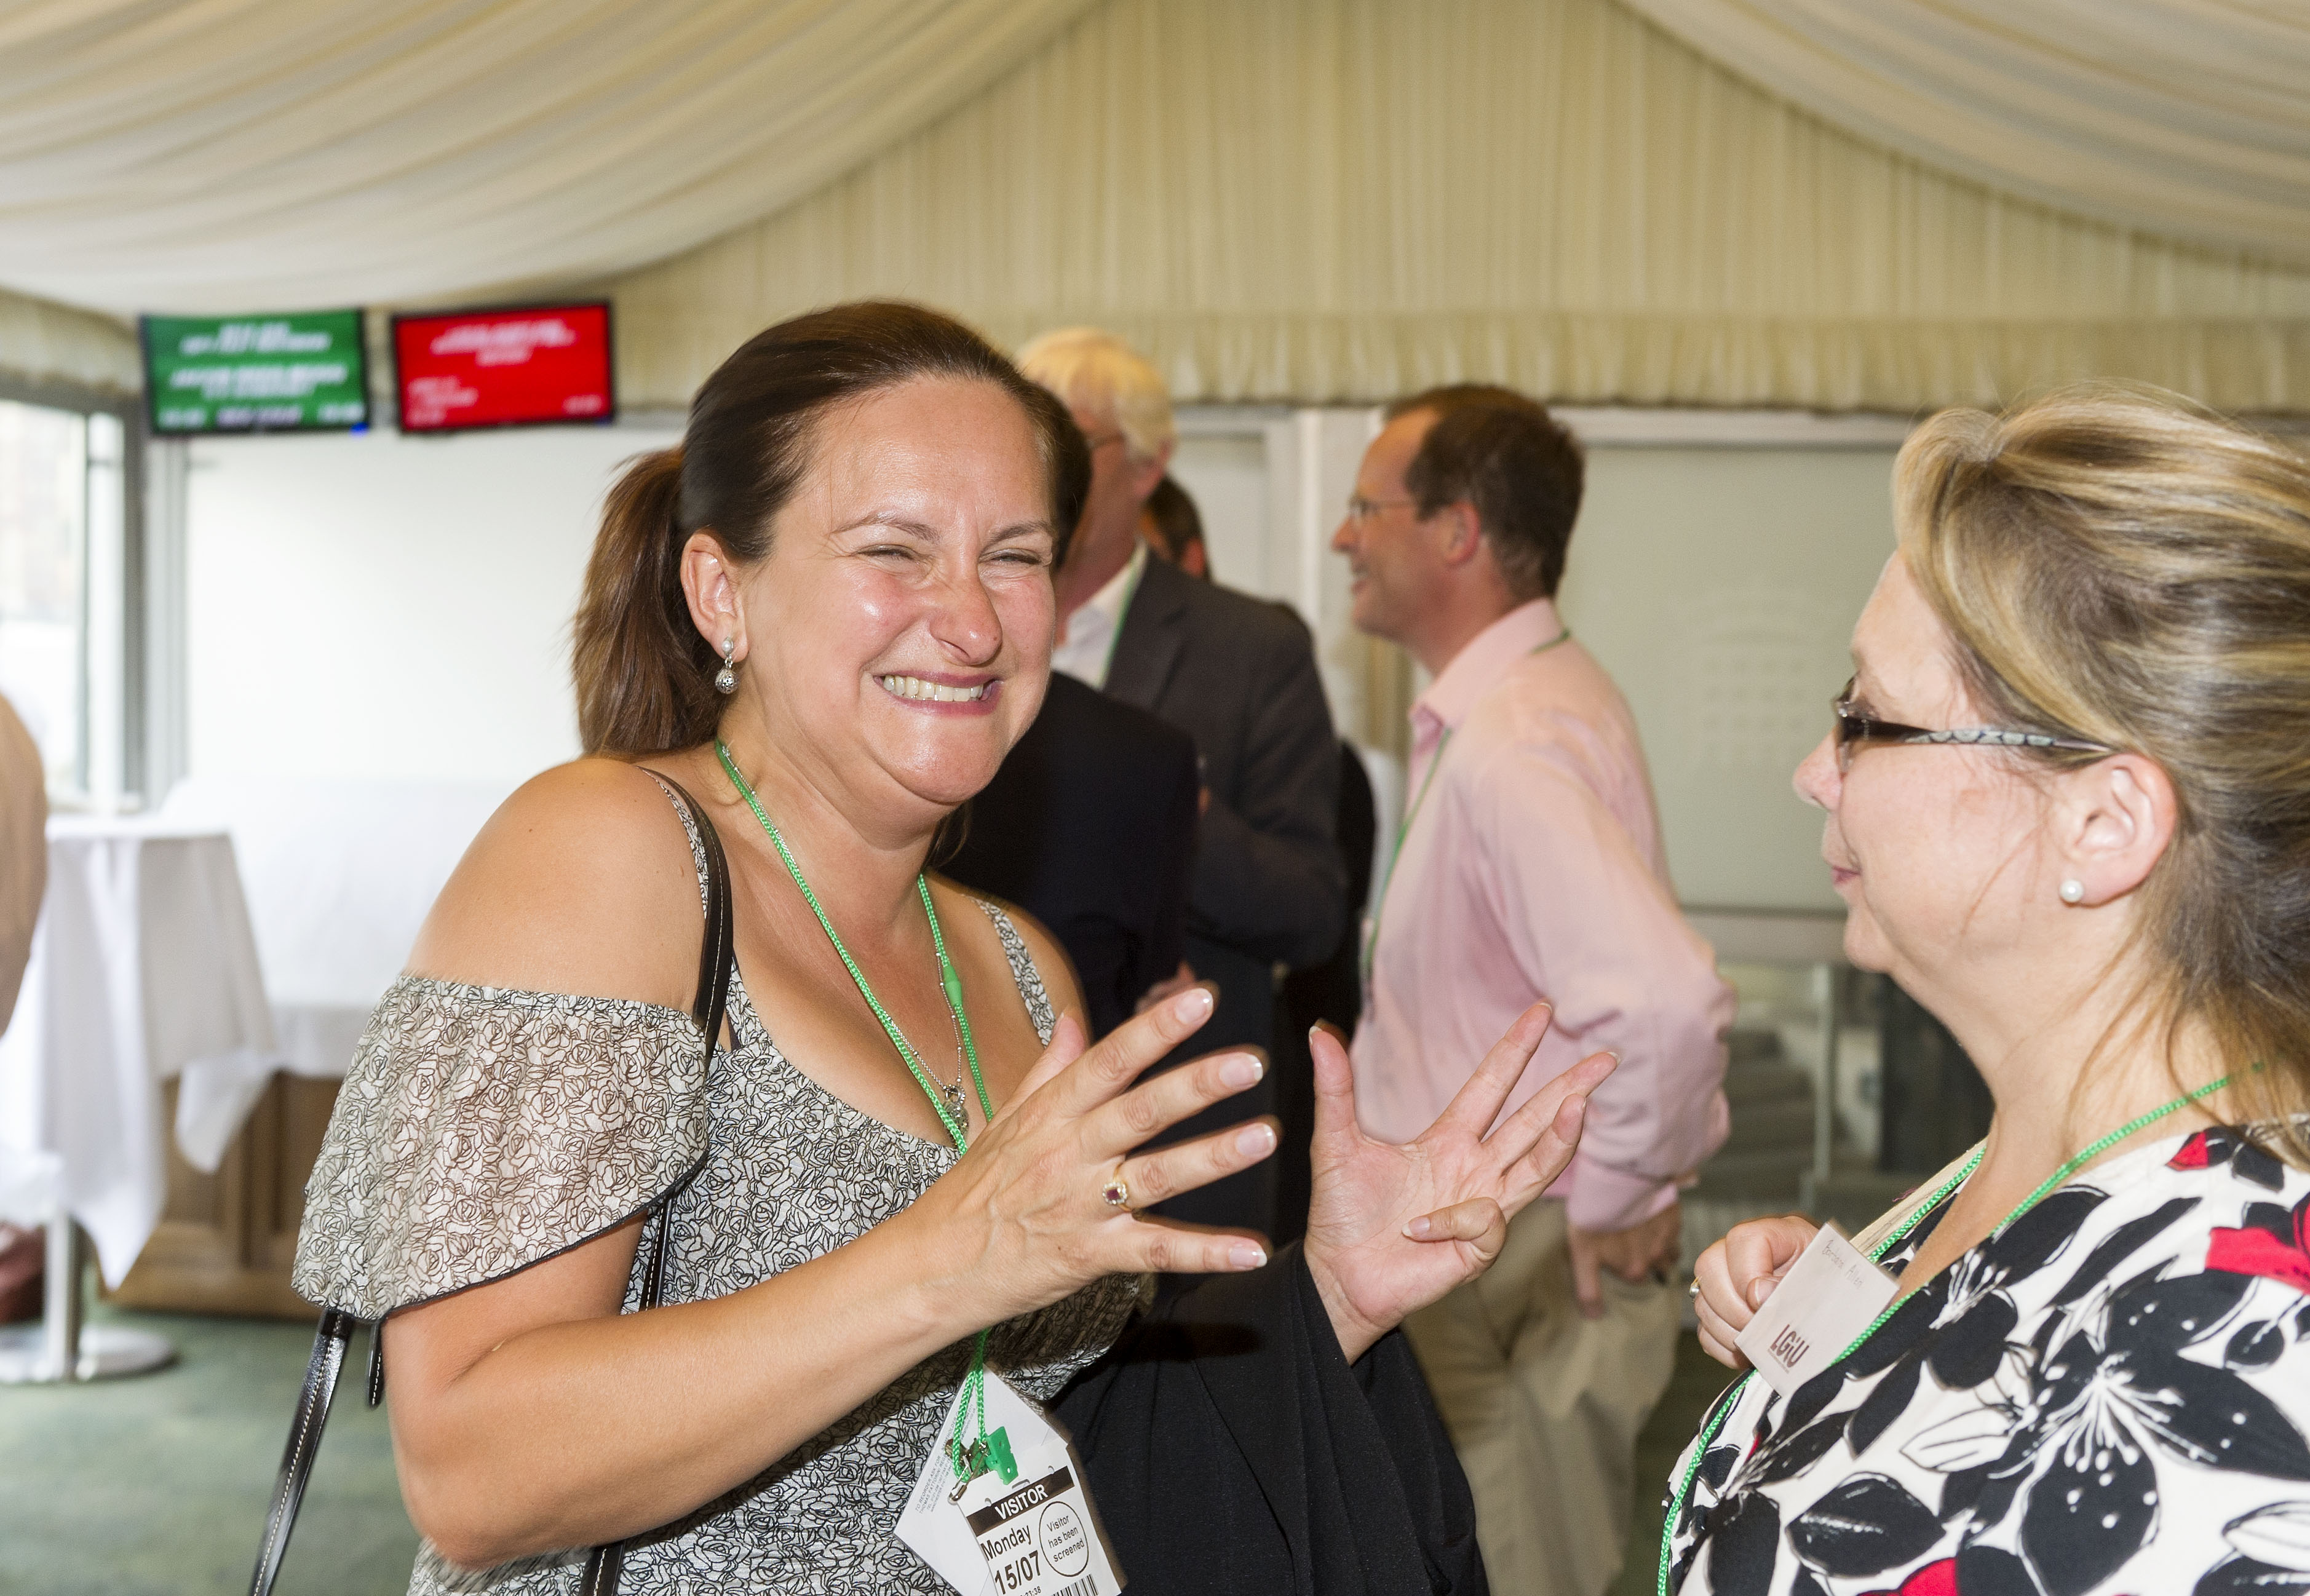 England, UK . 15.7.2013. London . Parliament. Local Government Parliamentary Reception. Licensed to LGIU for immediate editorial & PR publication, all other rights reserved.